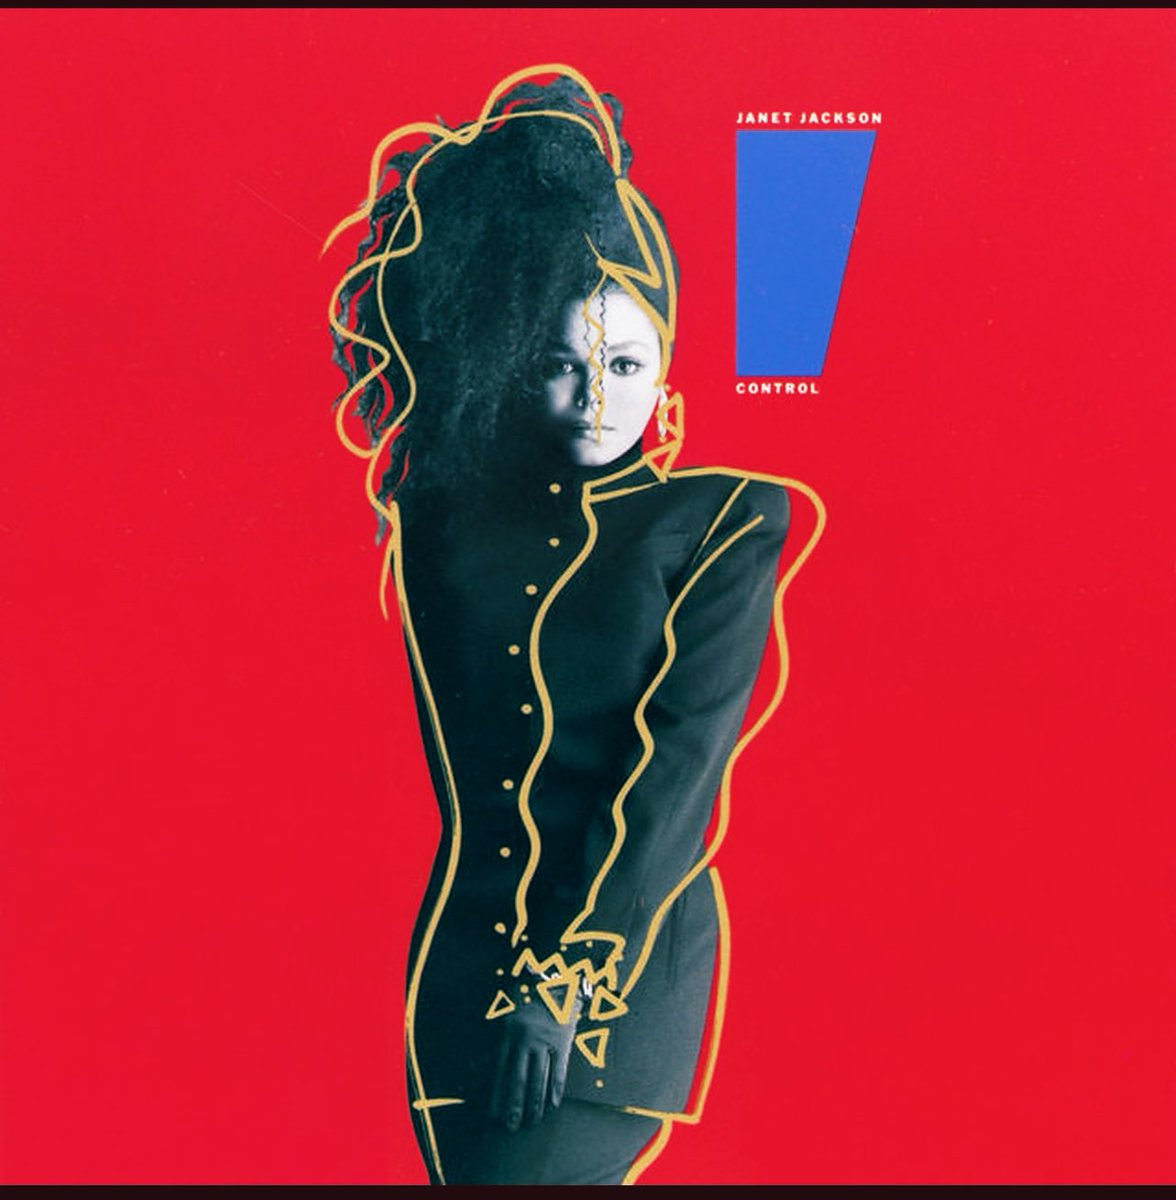 "Happy Anniversary ""Control"" @JanetJackson #control #JanetJackson 💙💜❤️😘"